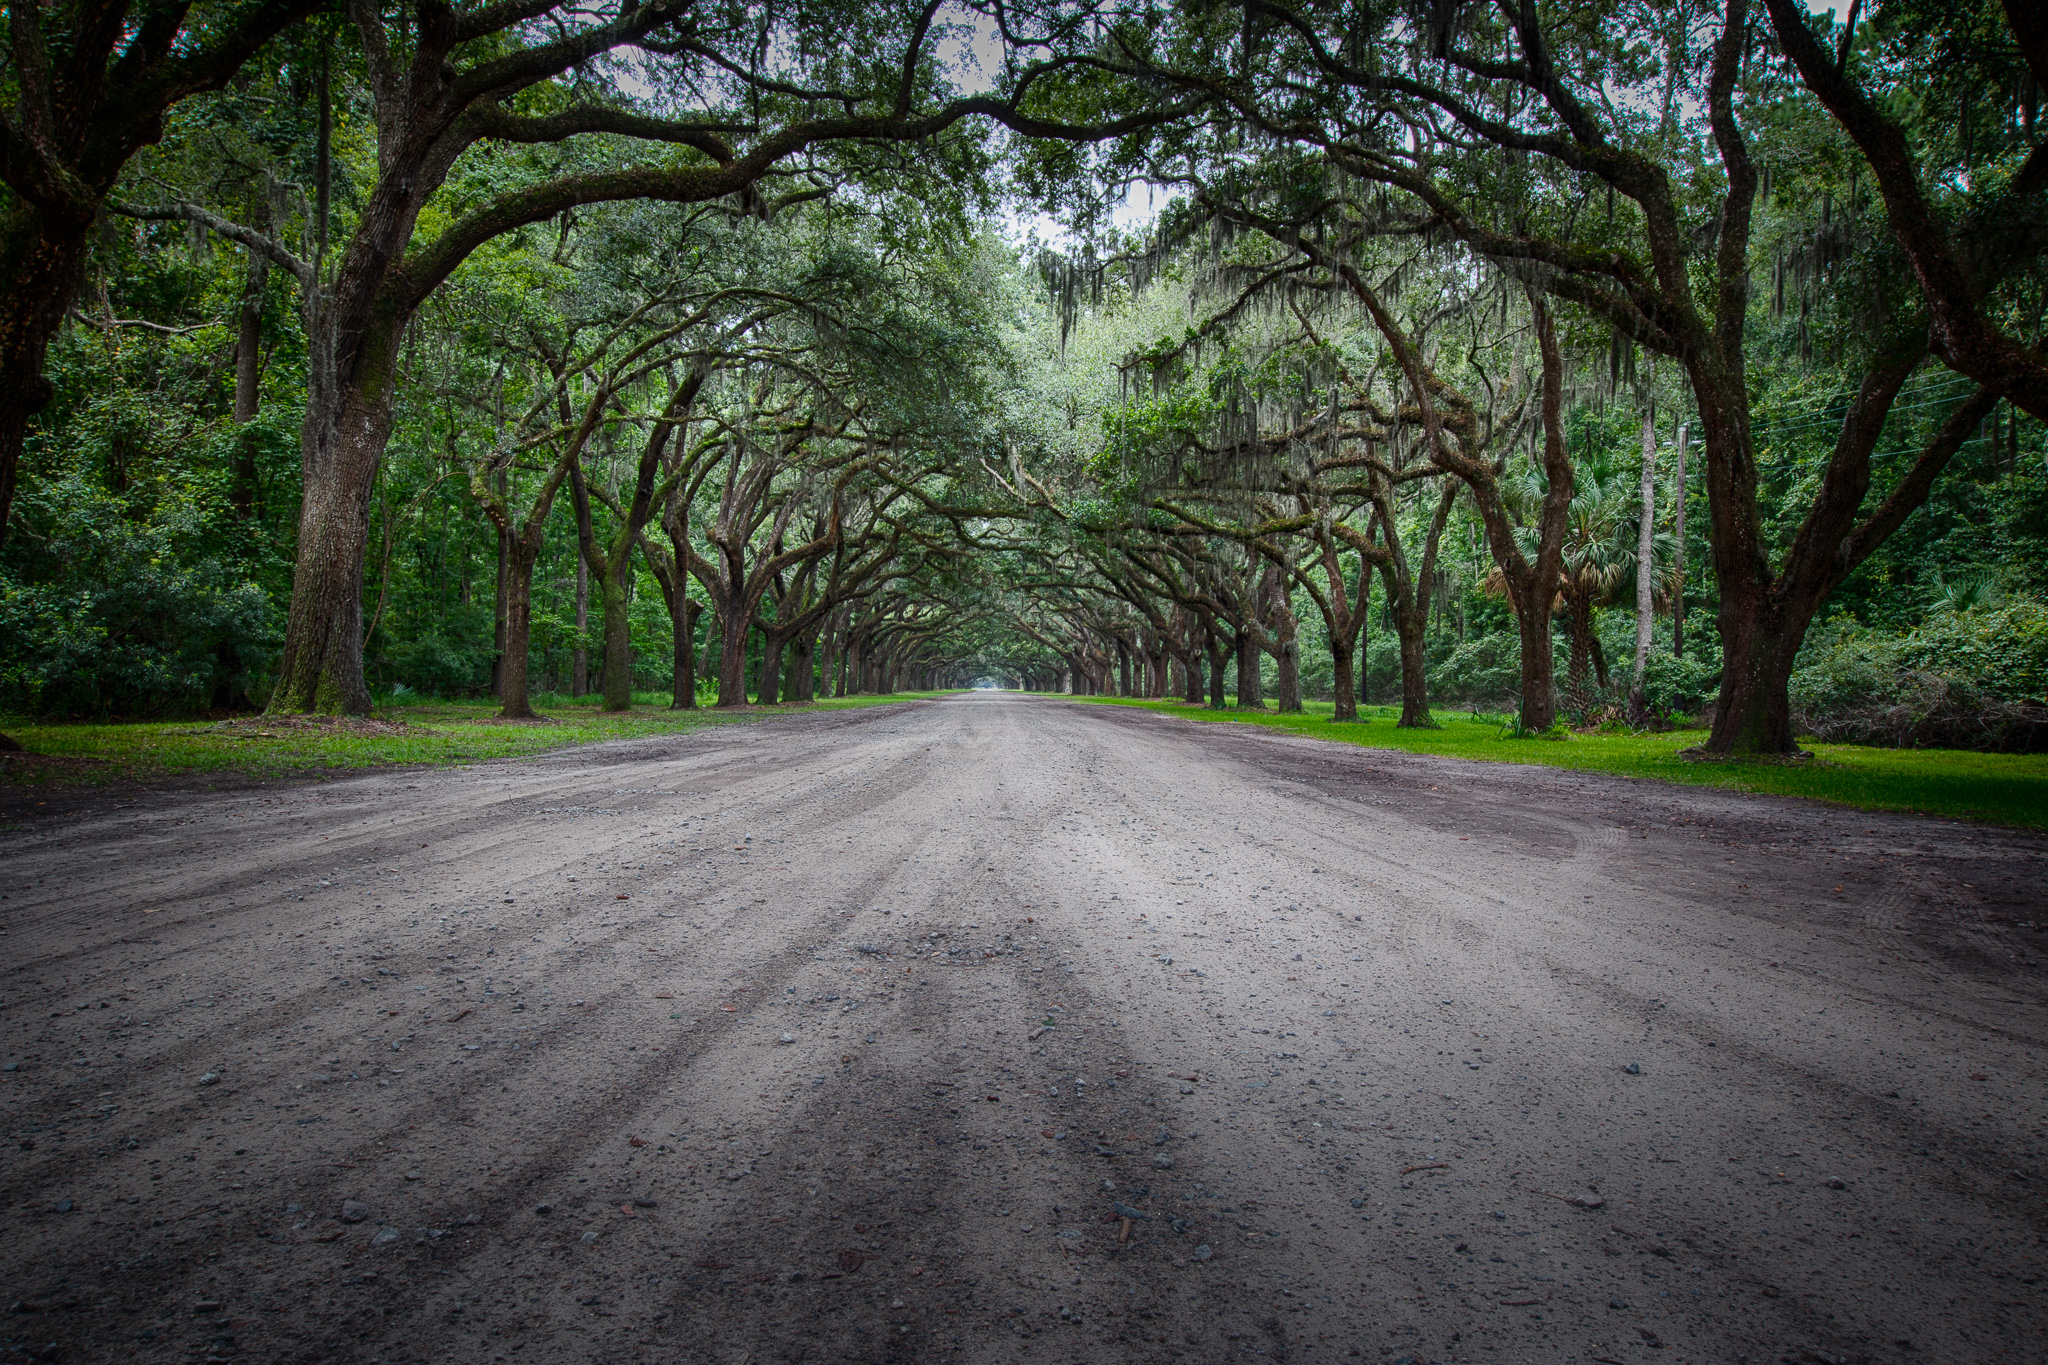 Wormsloe Avenue